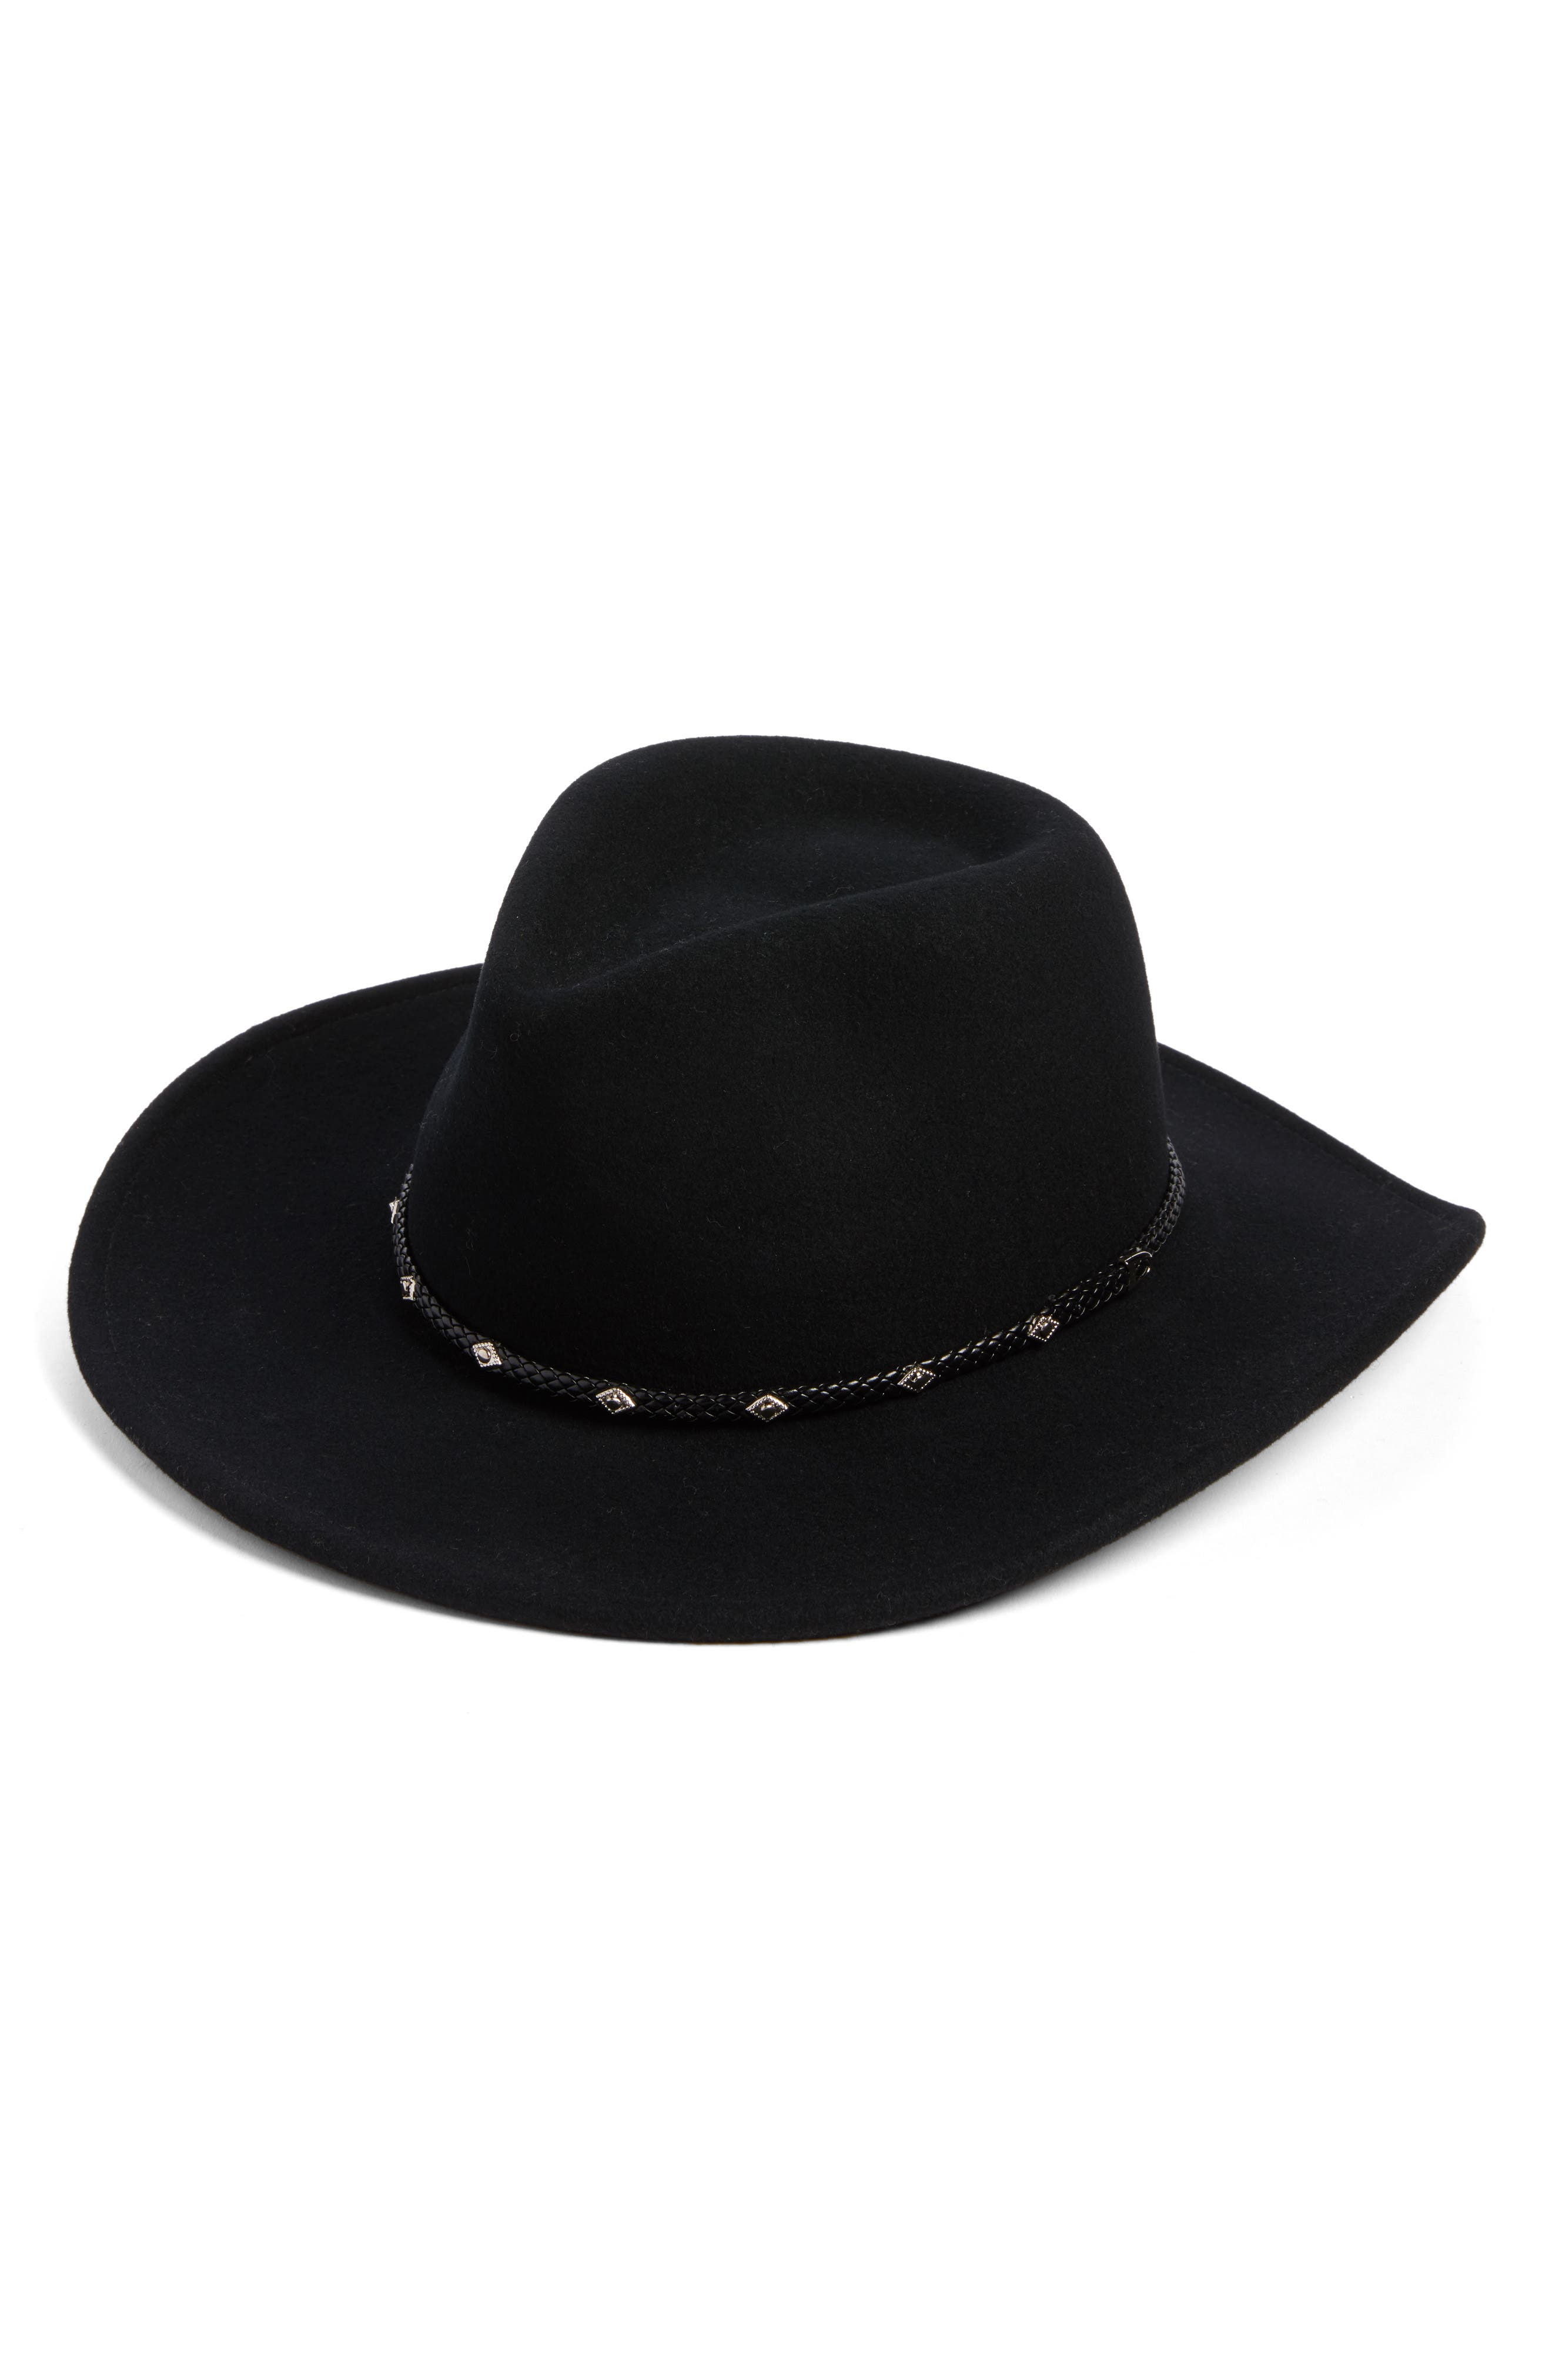 Roper Western Hat,                             Main thumbnail 1, color,                             001